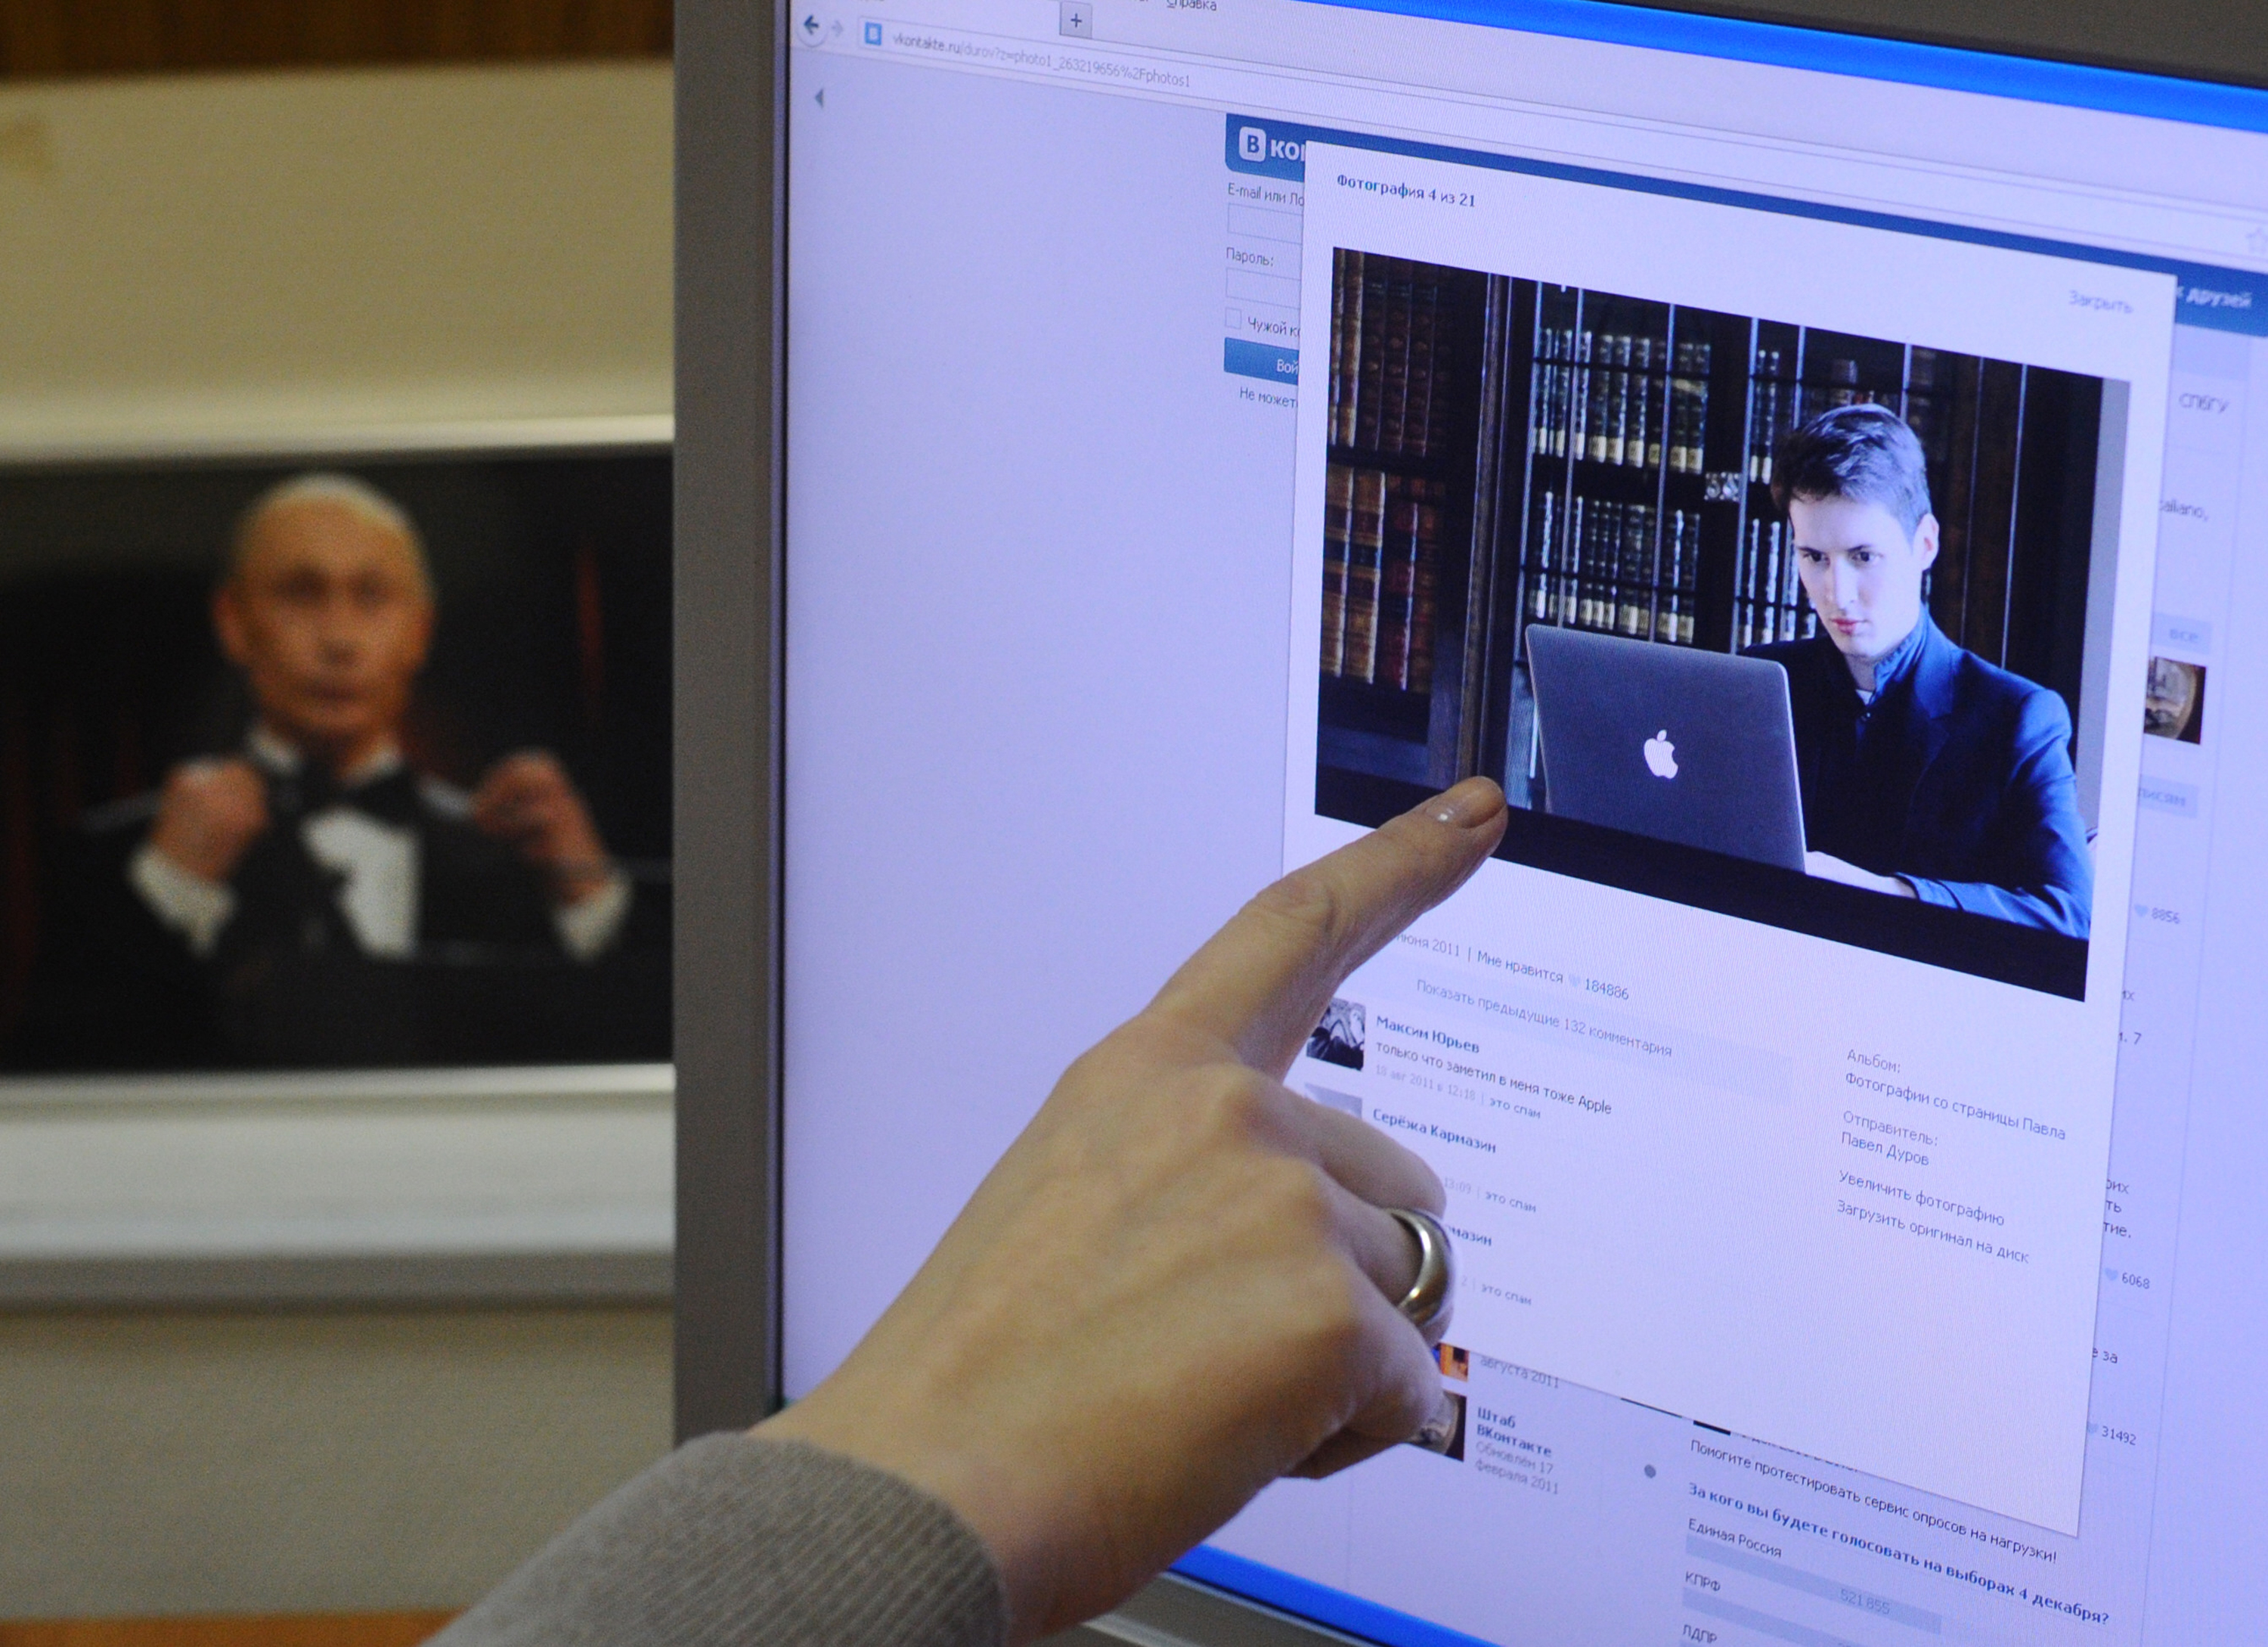 Page and portrait of Pavel Durov, the founder of Vkontakte social network